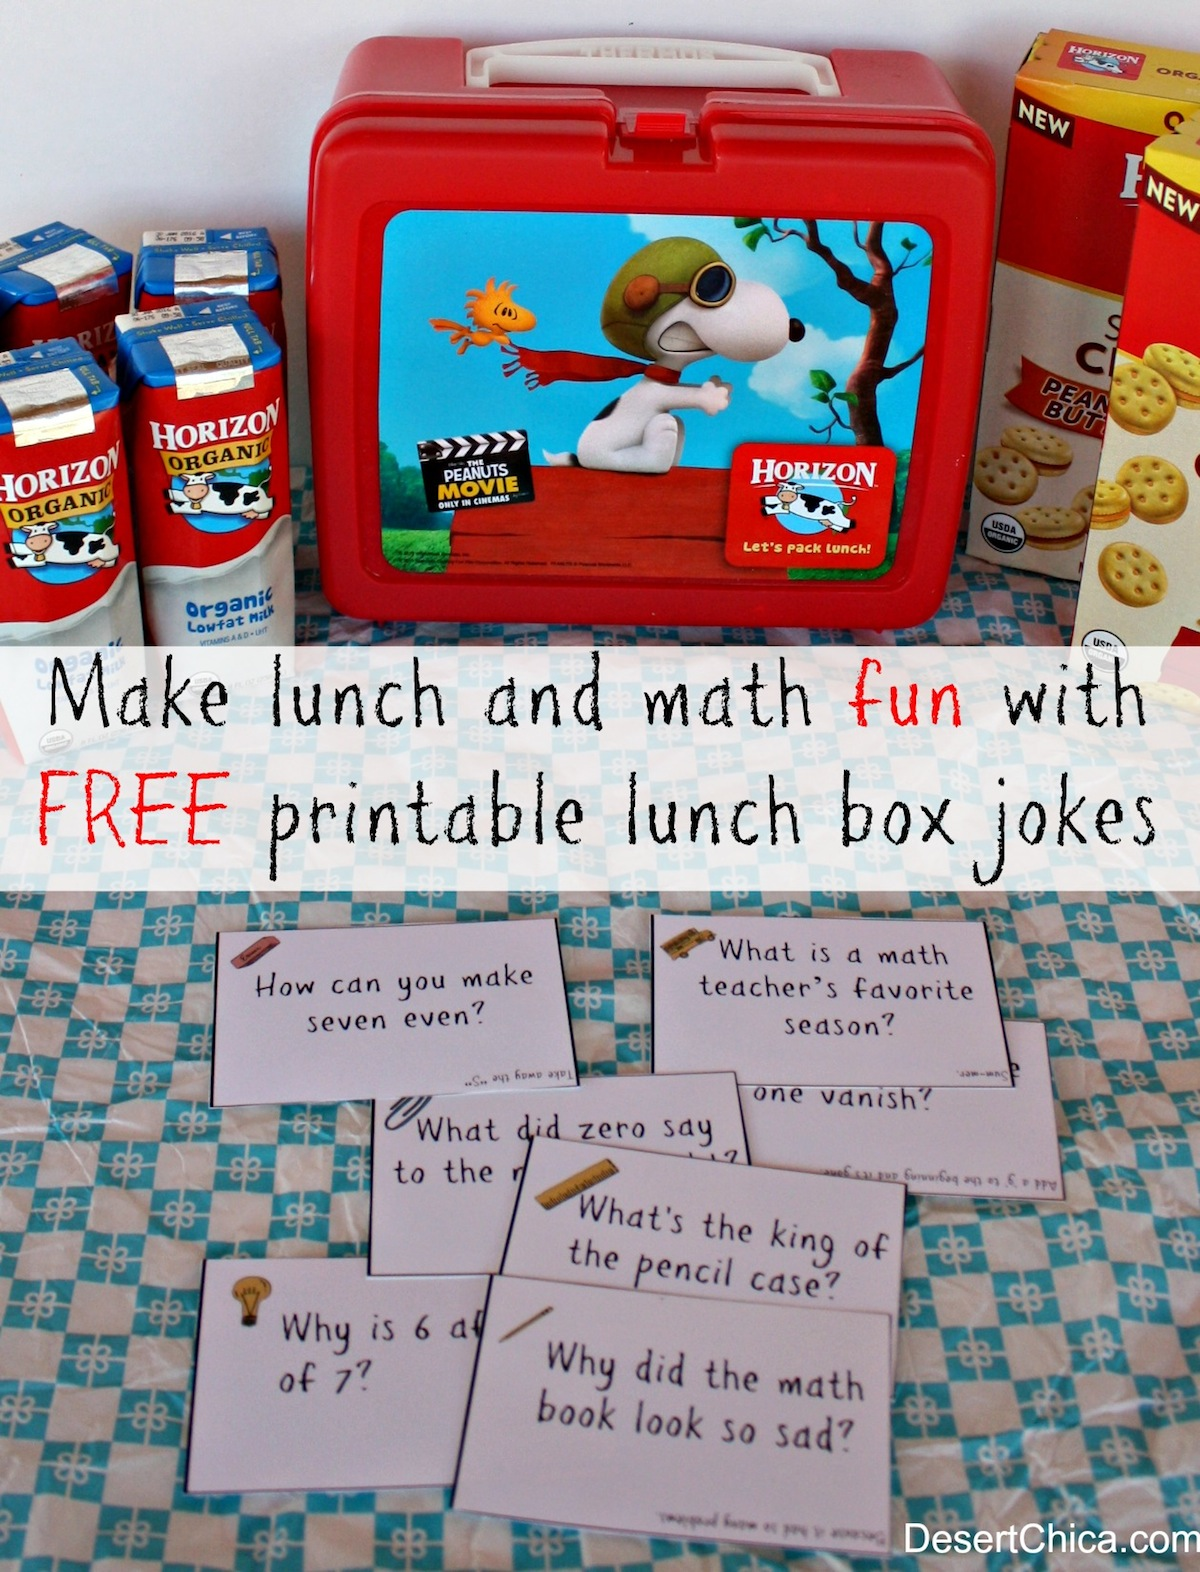 Free Math Lunch Box Jokes